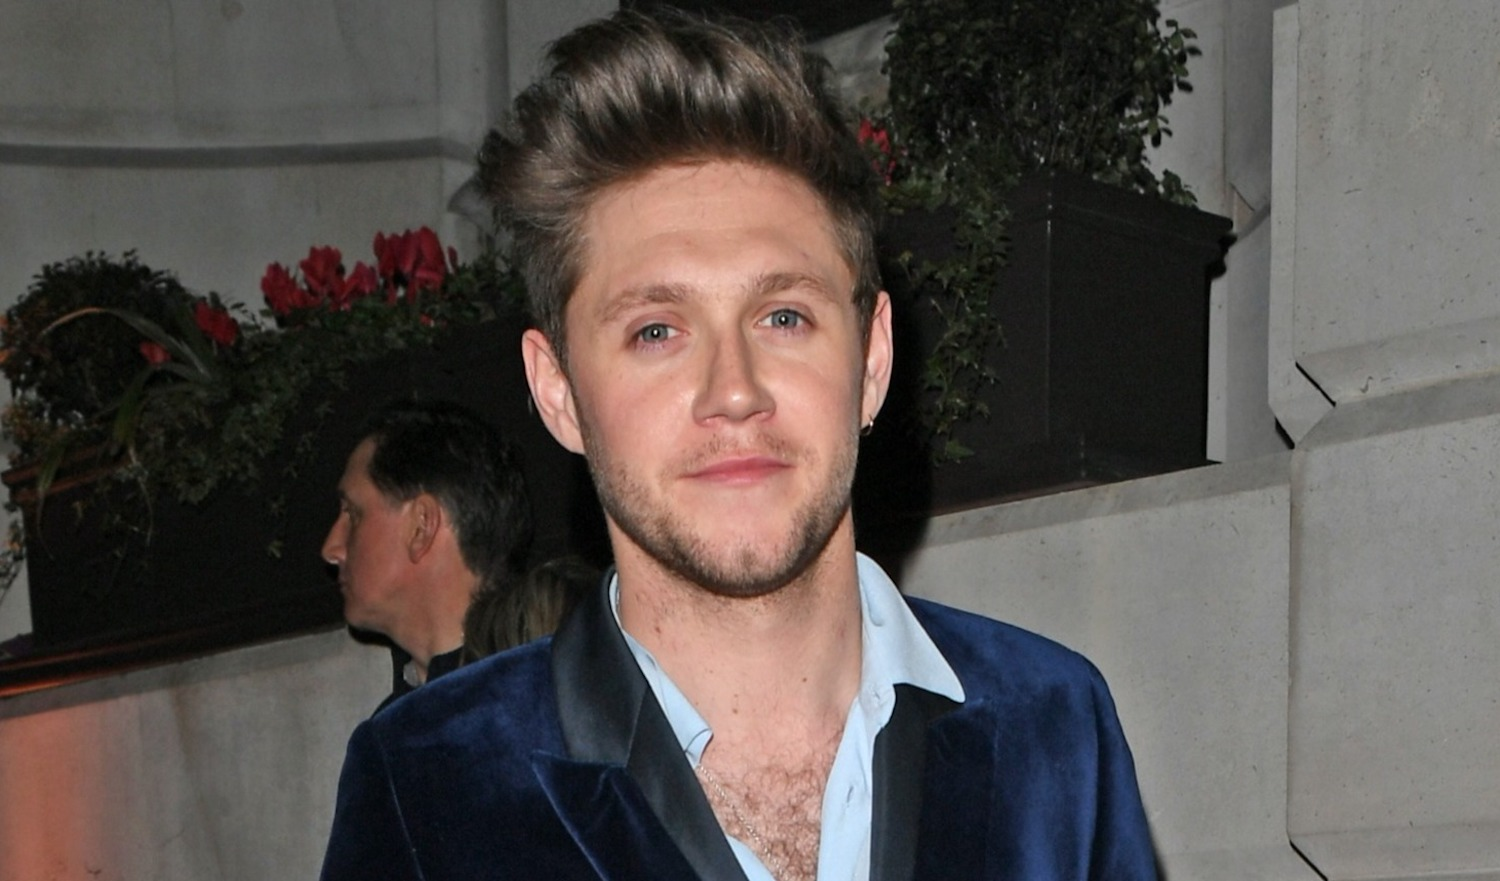 Love Island's Arabella Chi turned down One Direction's Niall Horan